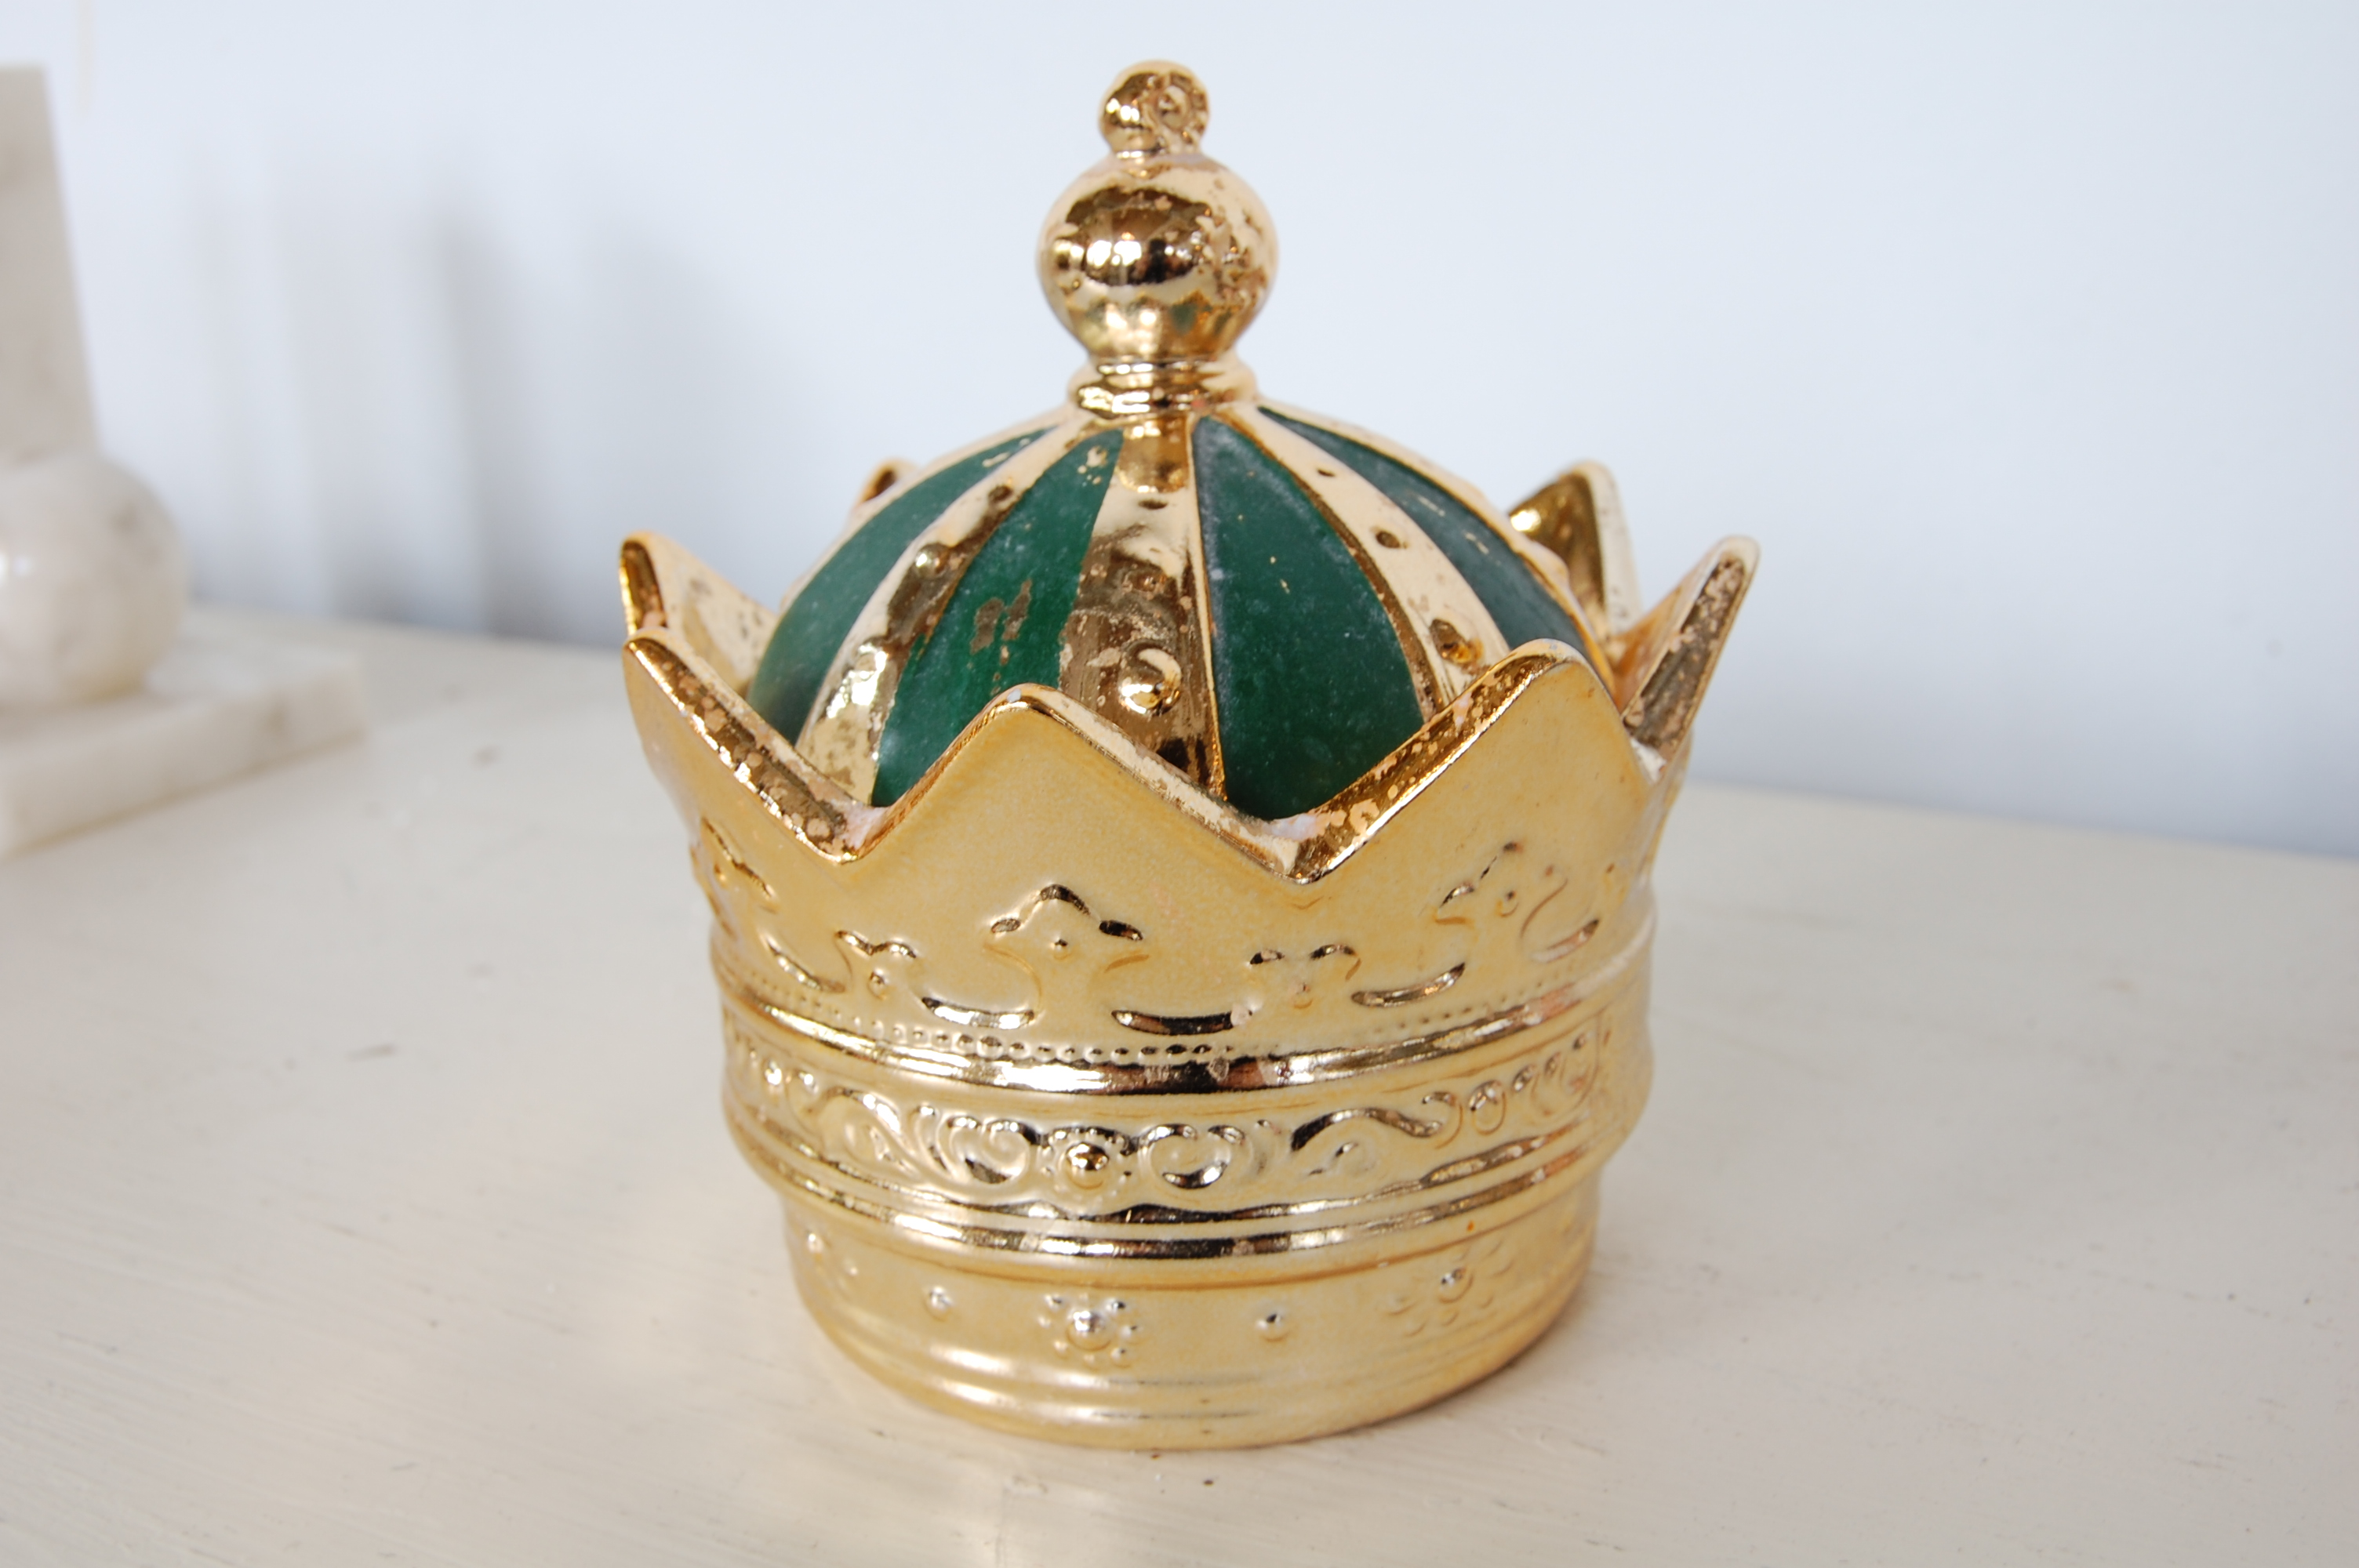 Vintage Gold Amp Emerald Ceramic Crown Container The Savoy